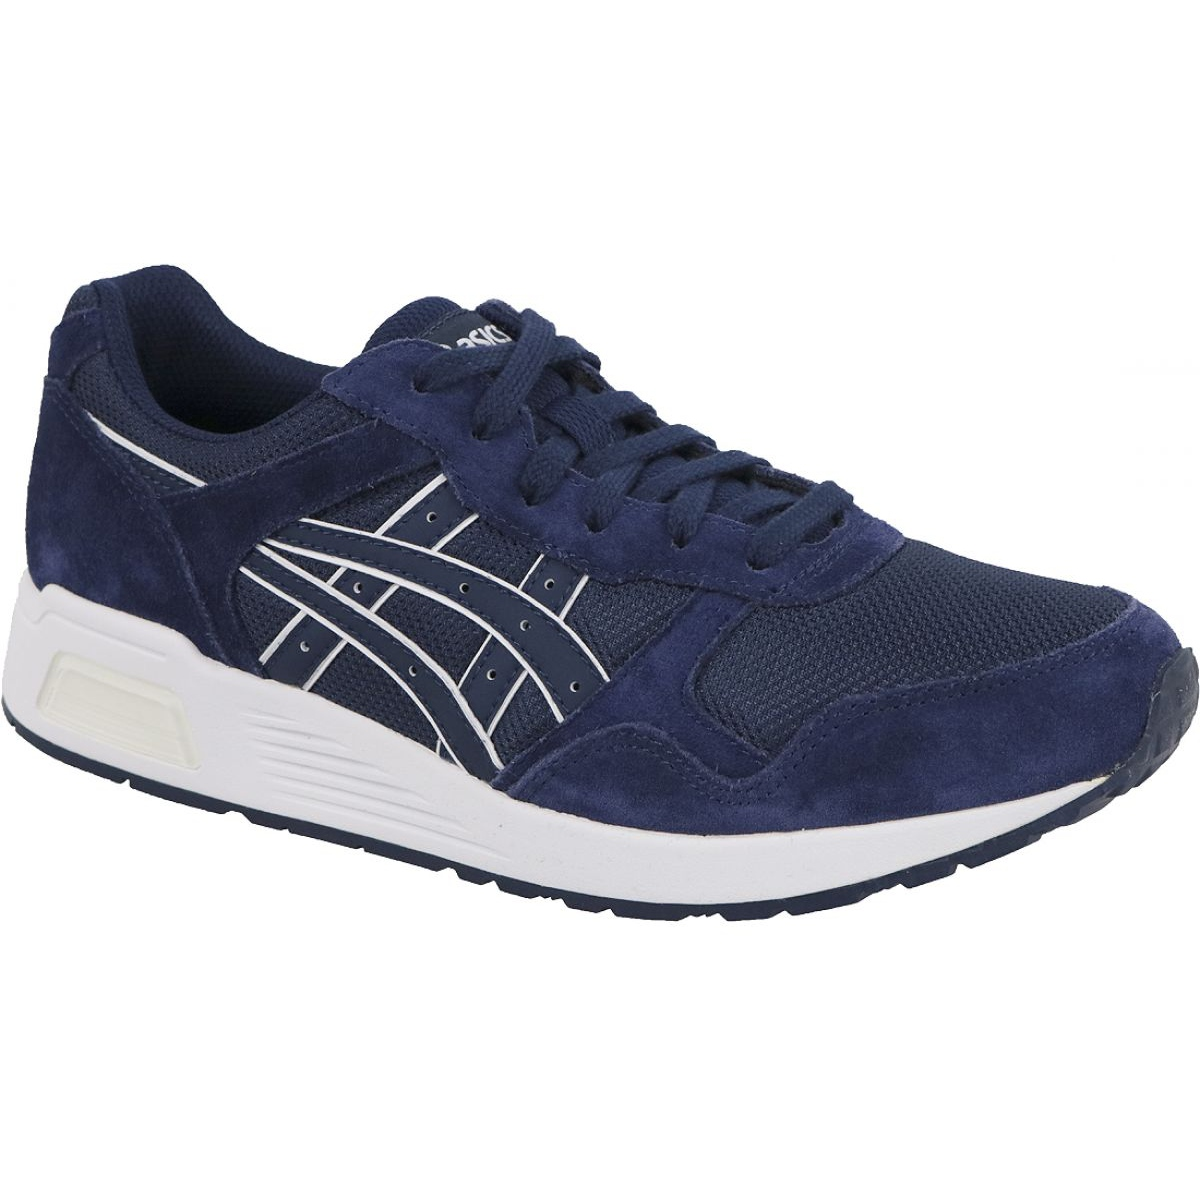 Asics Lyte-Trainer M 1203A004-401 shoes